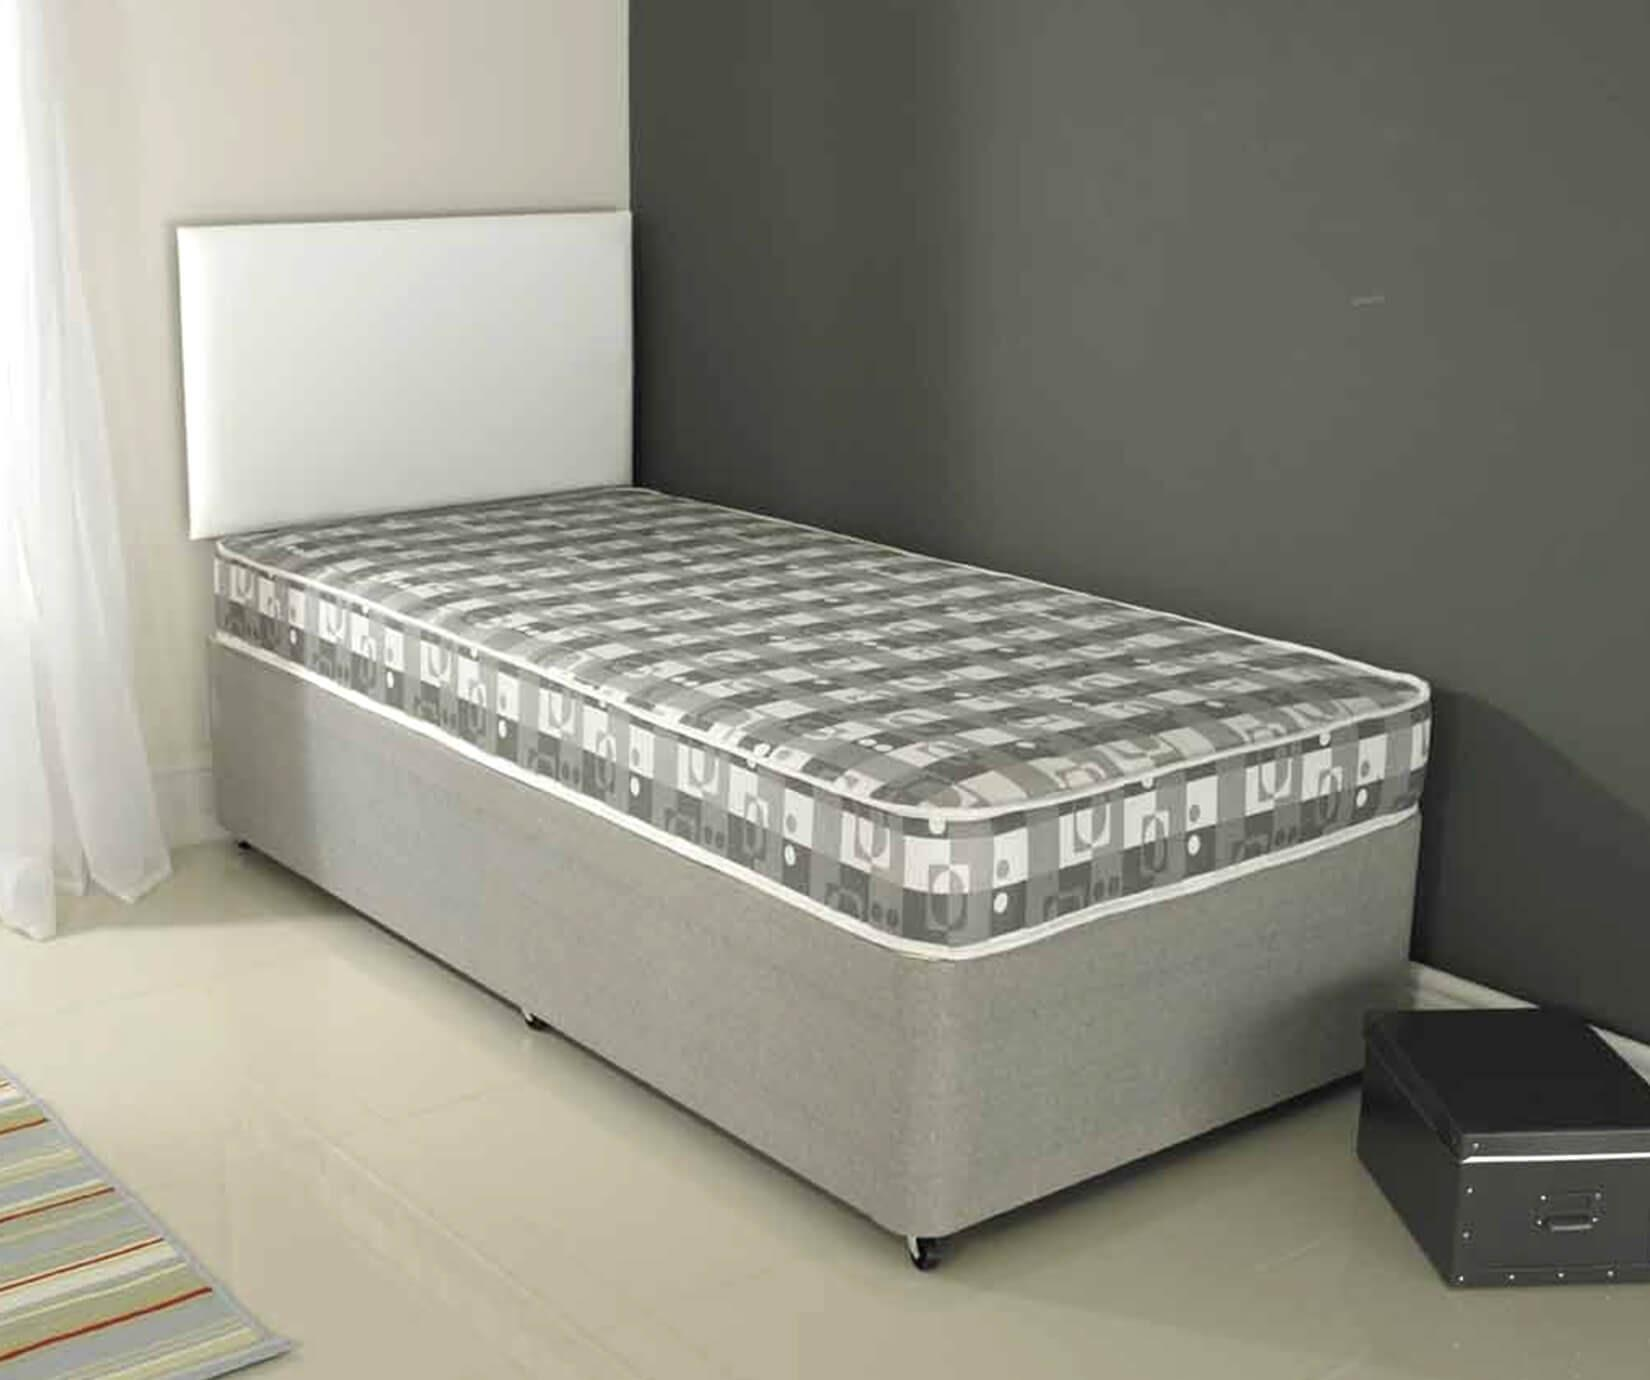 Frade new budget single bed £75